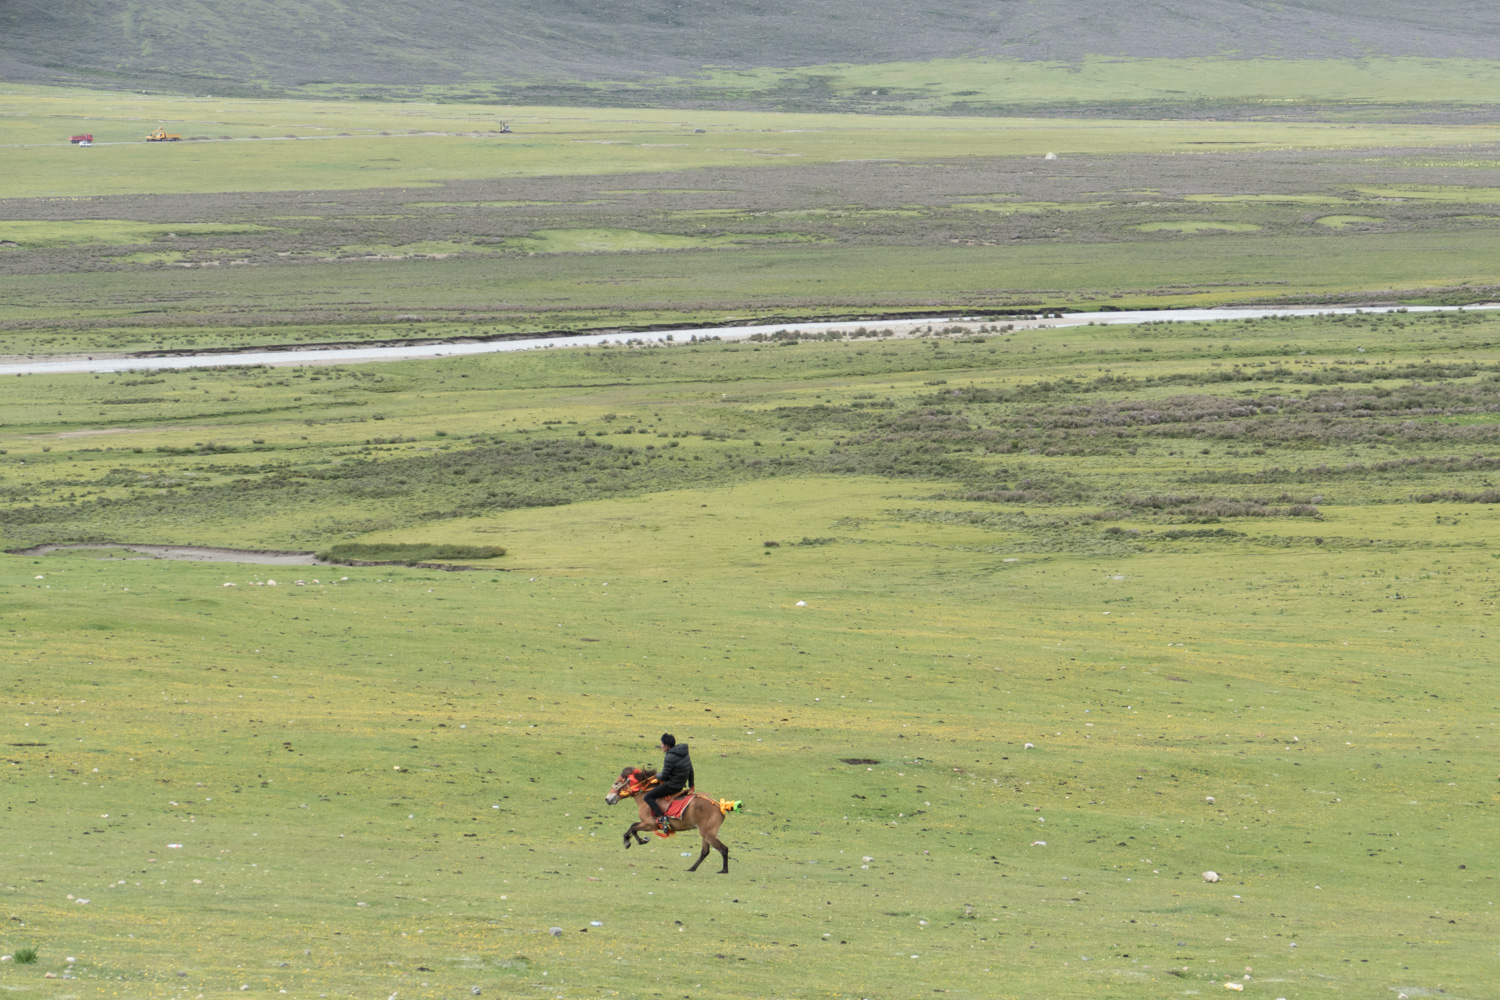 Galloping across the Tibetan plain